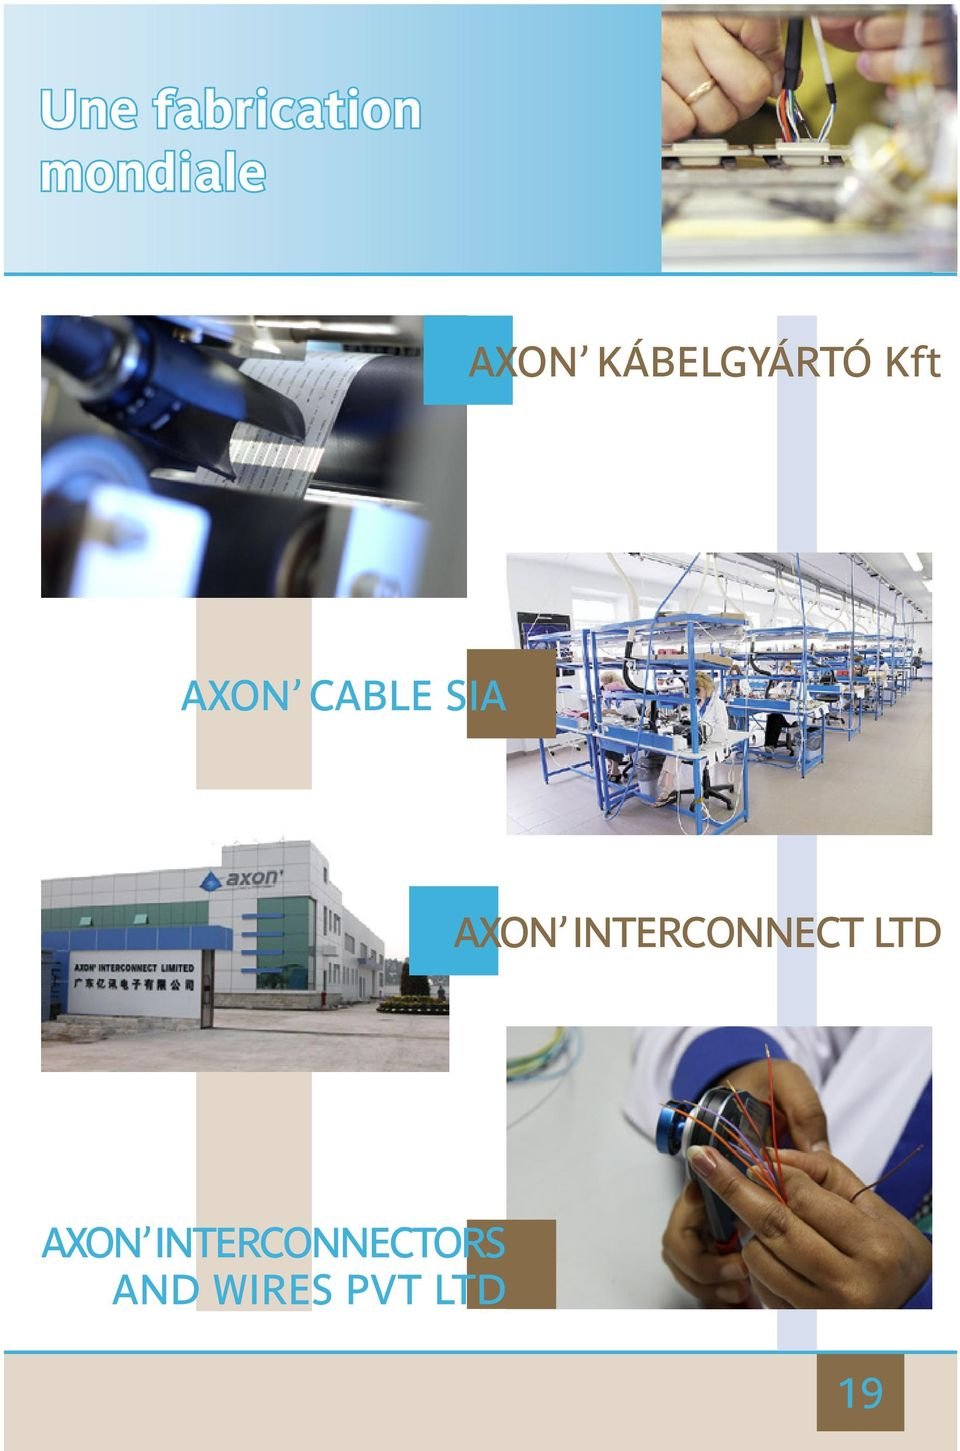 AXON INTERCONNECT LTD AXON